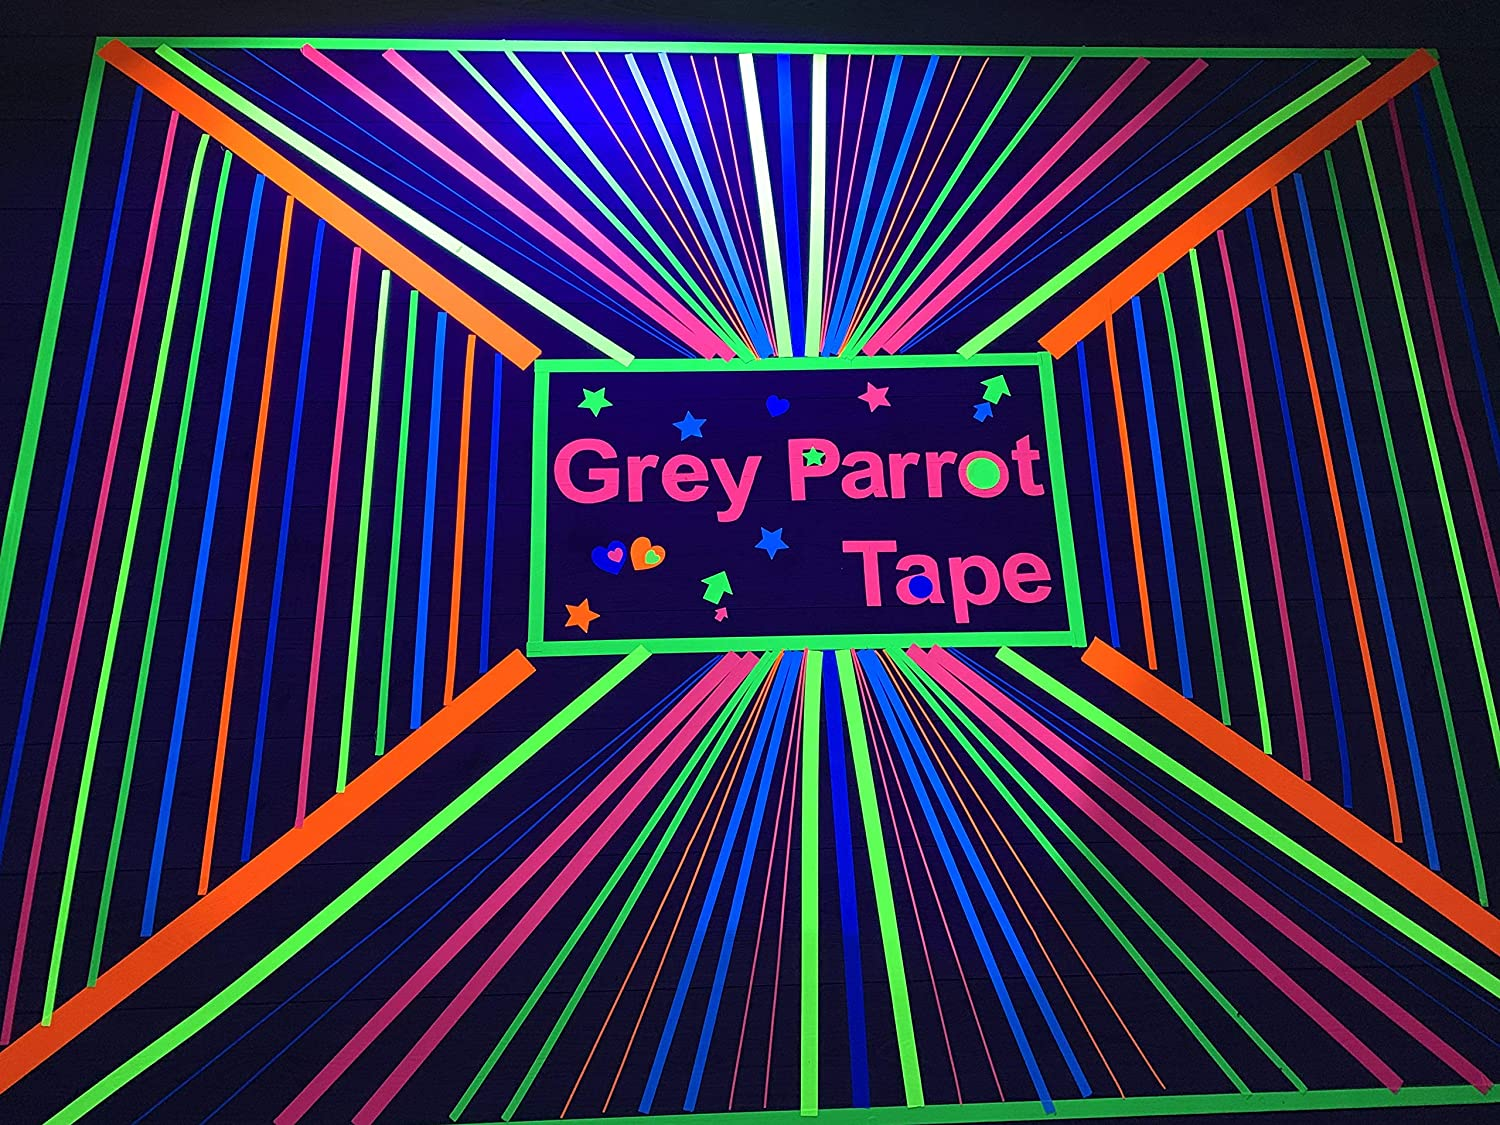 GreyParrot Blacklight Party Tape 5